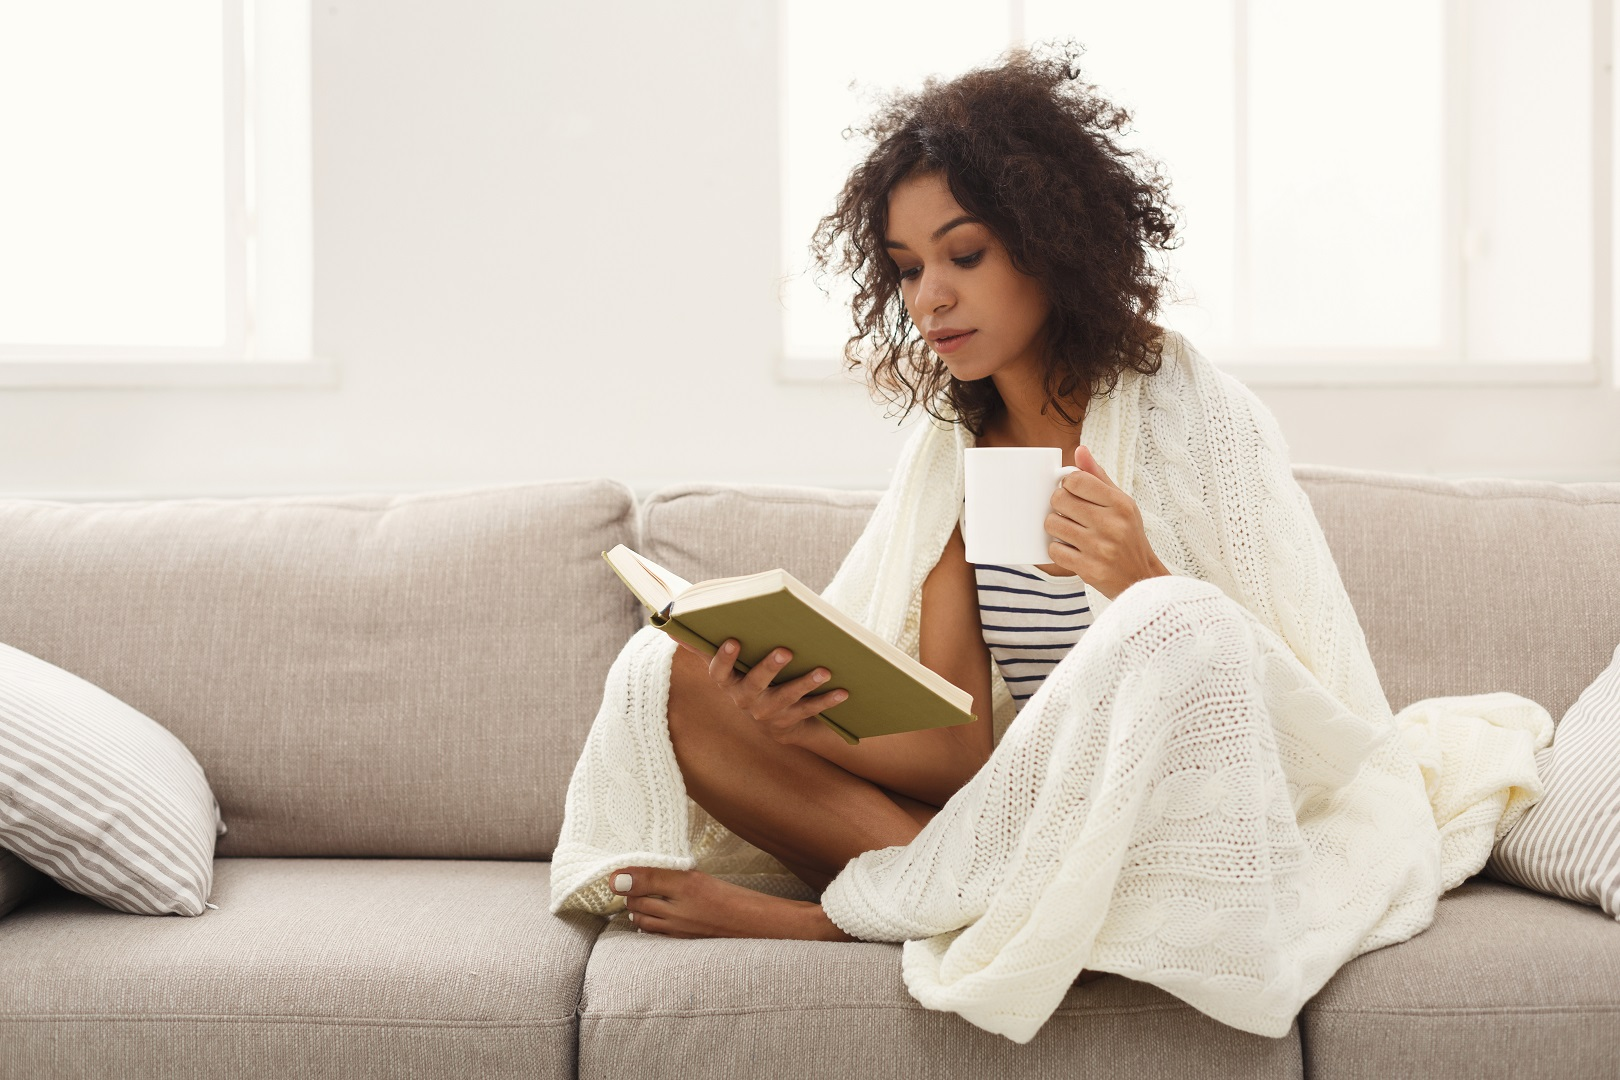 African American Woman Reading Book on Sofa White Blanket and Mug